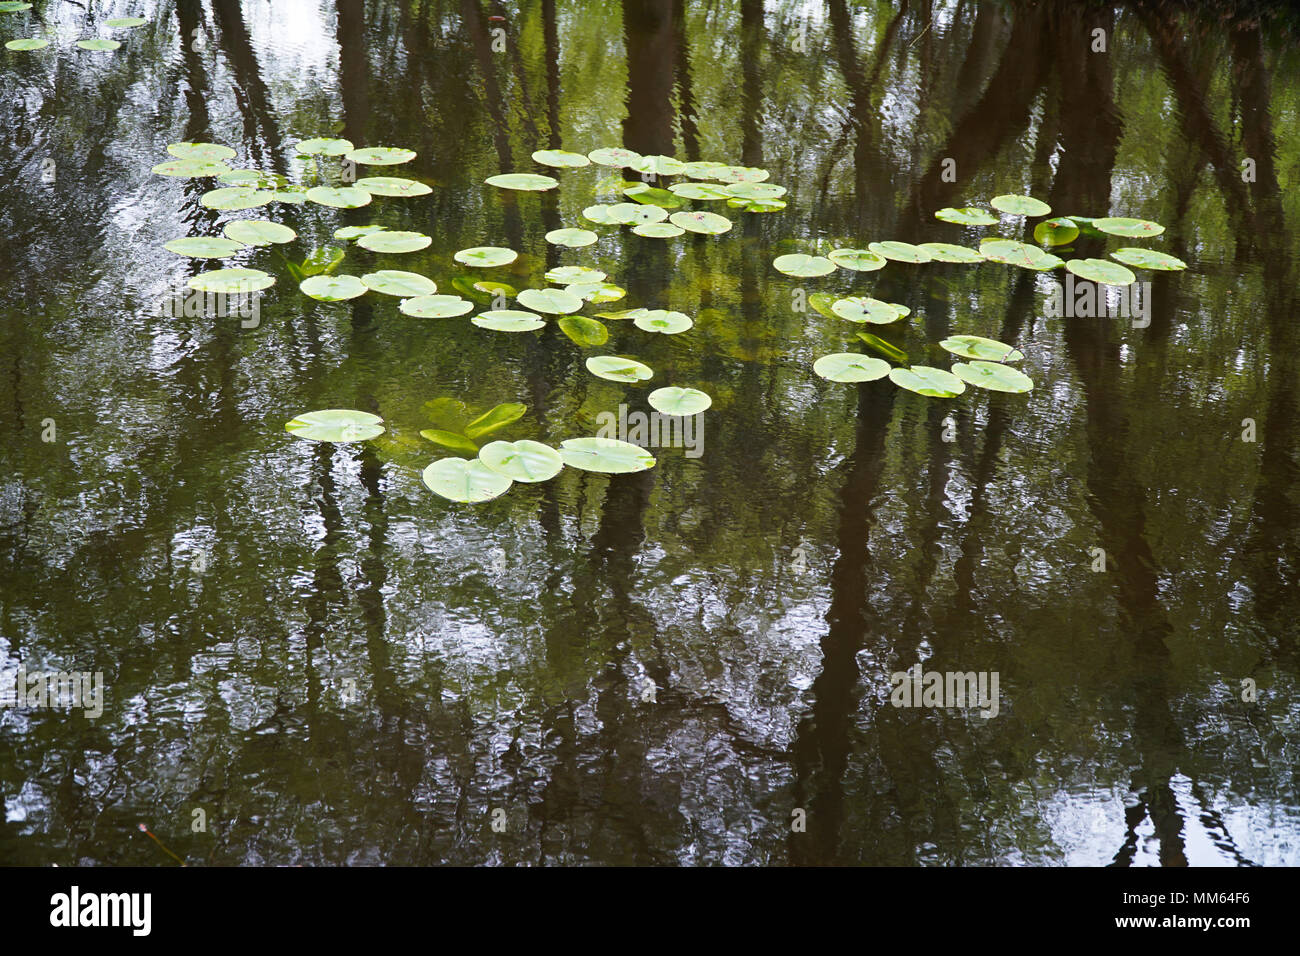 Calm Lake Water Reflections (Trees & Overcast Cloudy Sky) - 1 - Stock Image